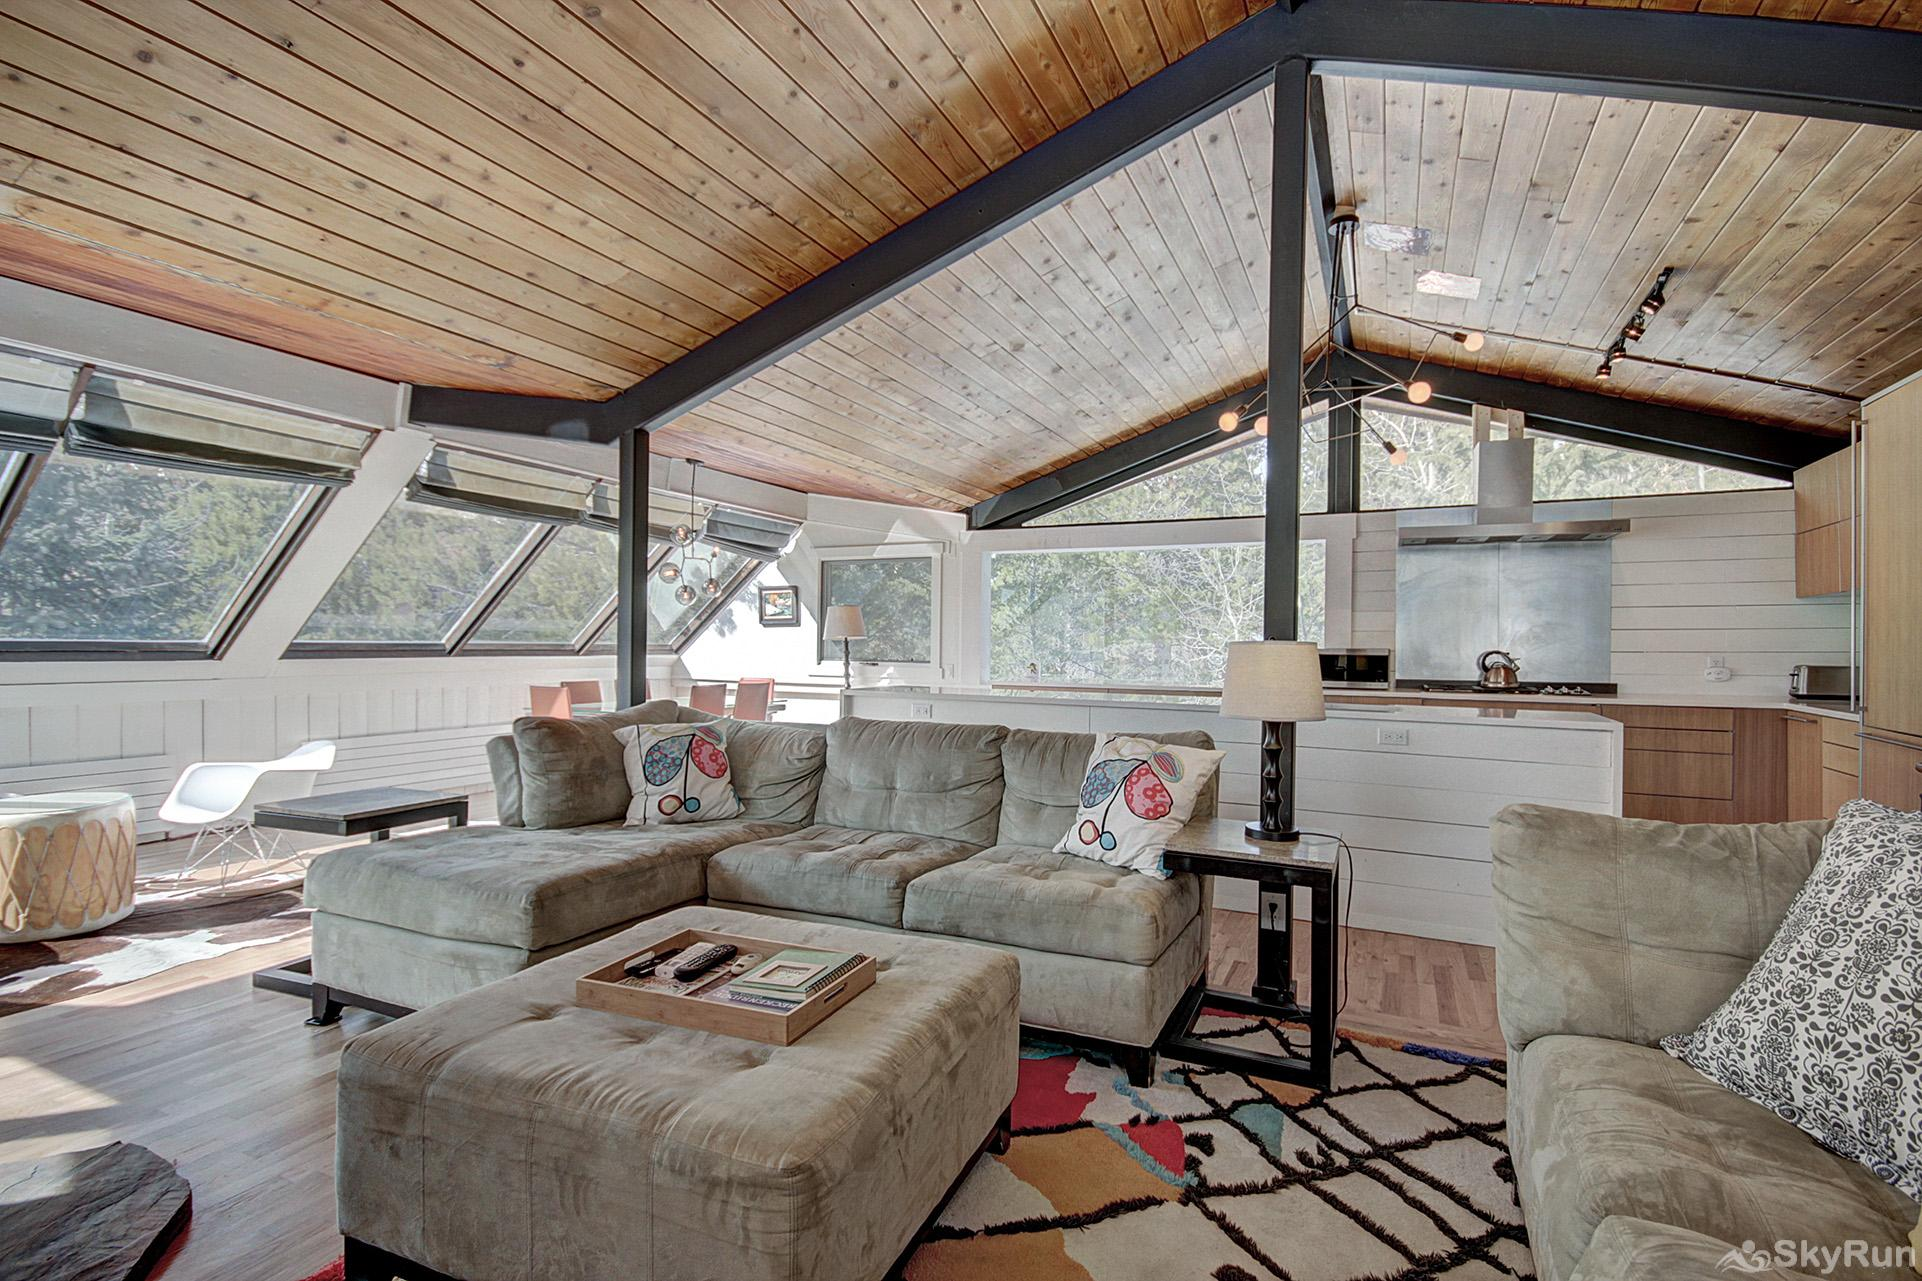 Elk Horn Cabin Large windows allow plenty of natural light